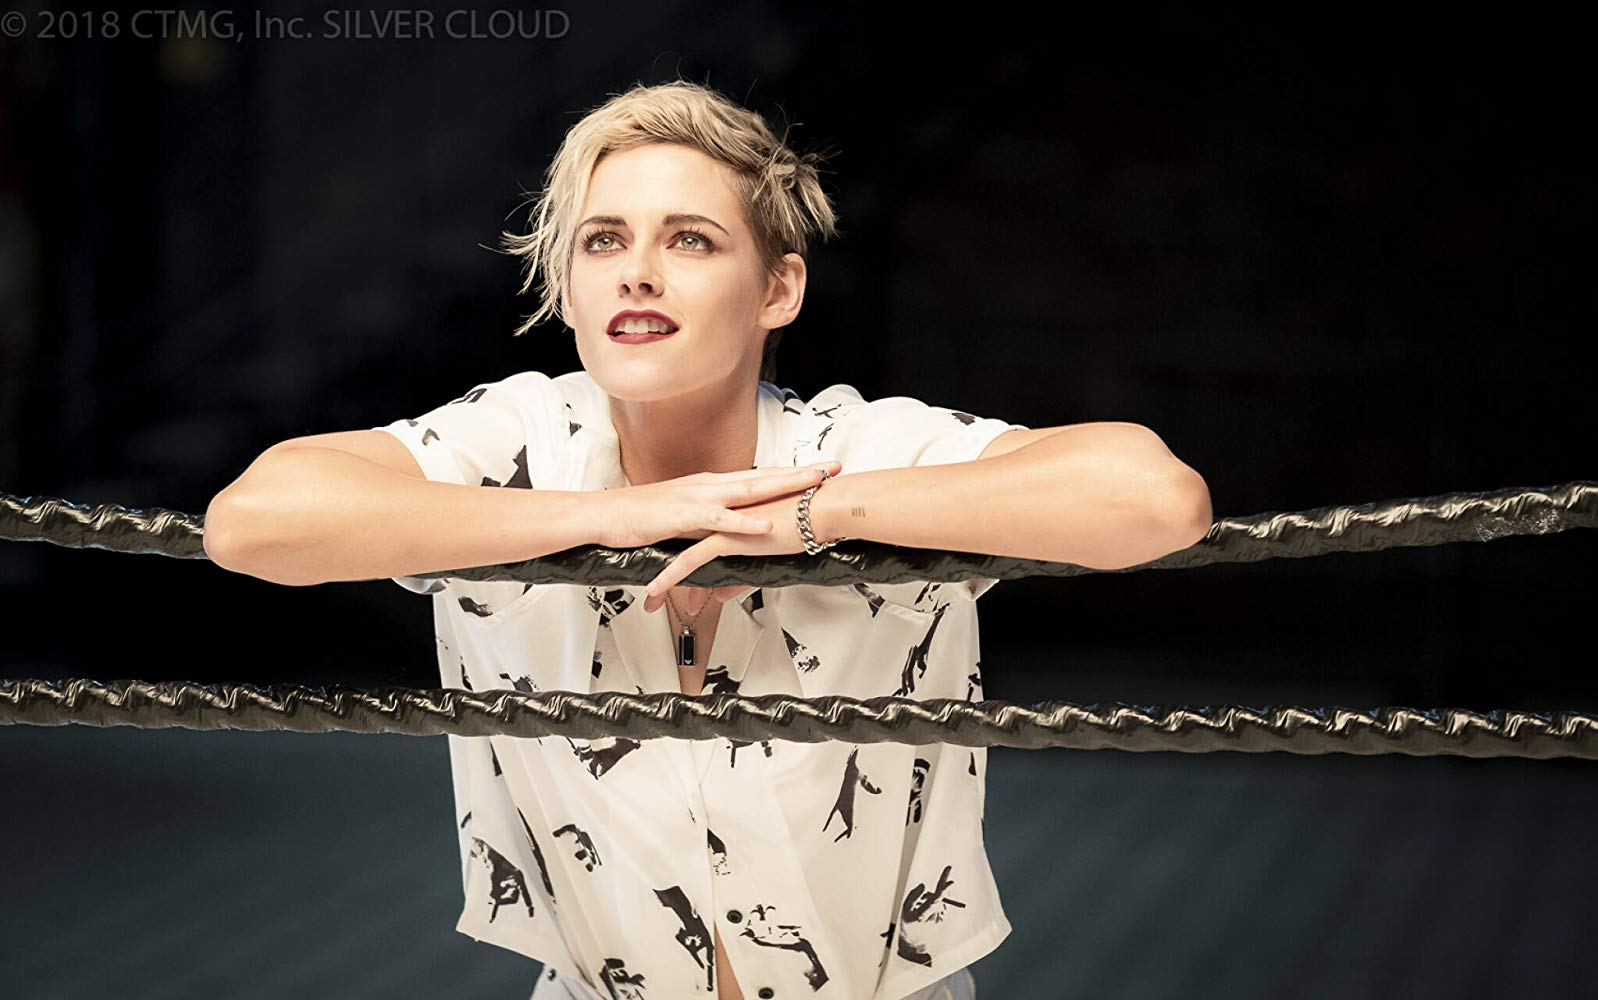 Kristen Stewart as Sabina in Charlie's Angels leans against the ropes of a boxing ring.